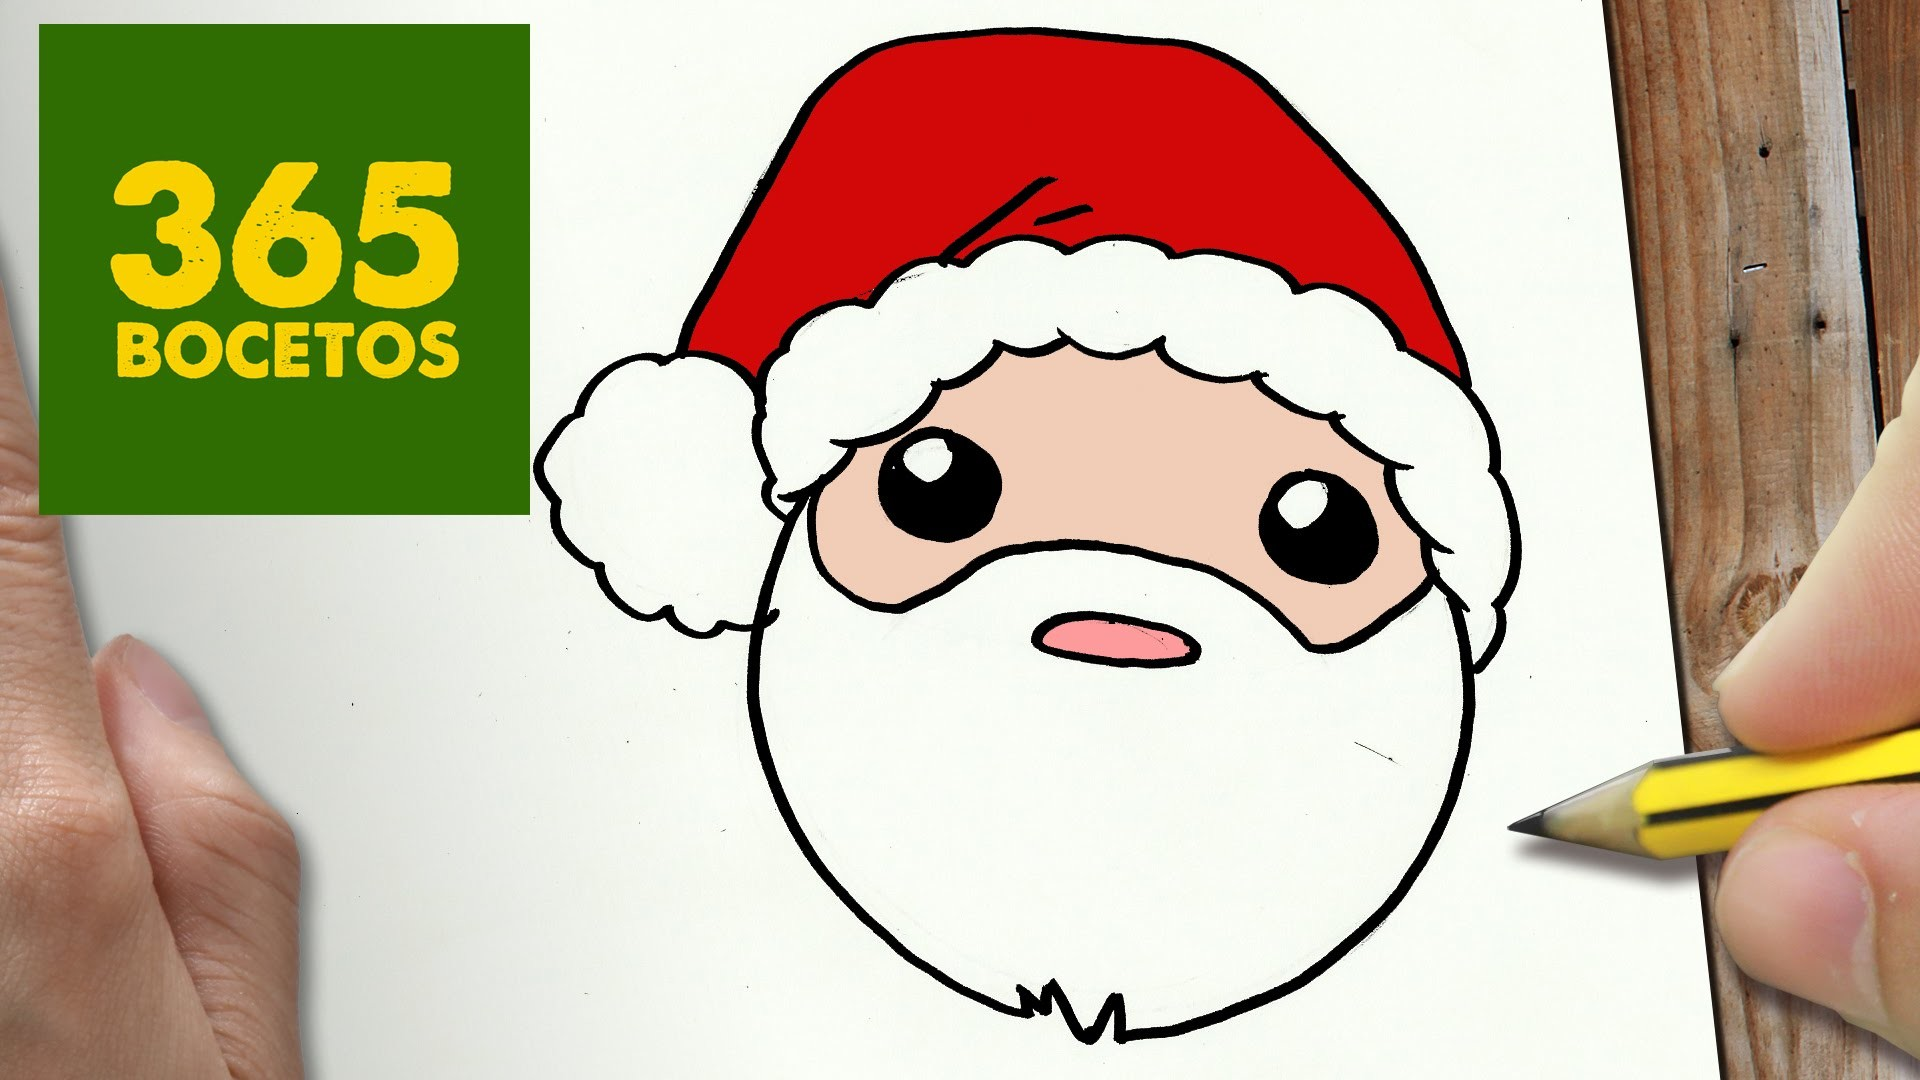 Santa Claus Imagenes De Navidad Para Colorear Kawaii Crafts Diy And Ideas Blog